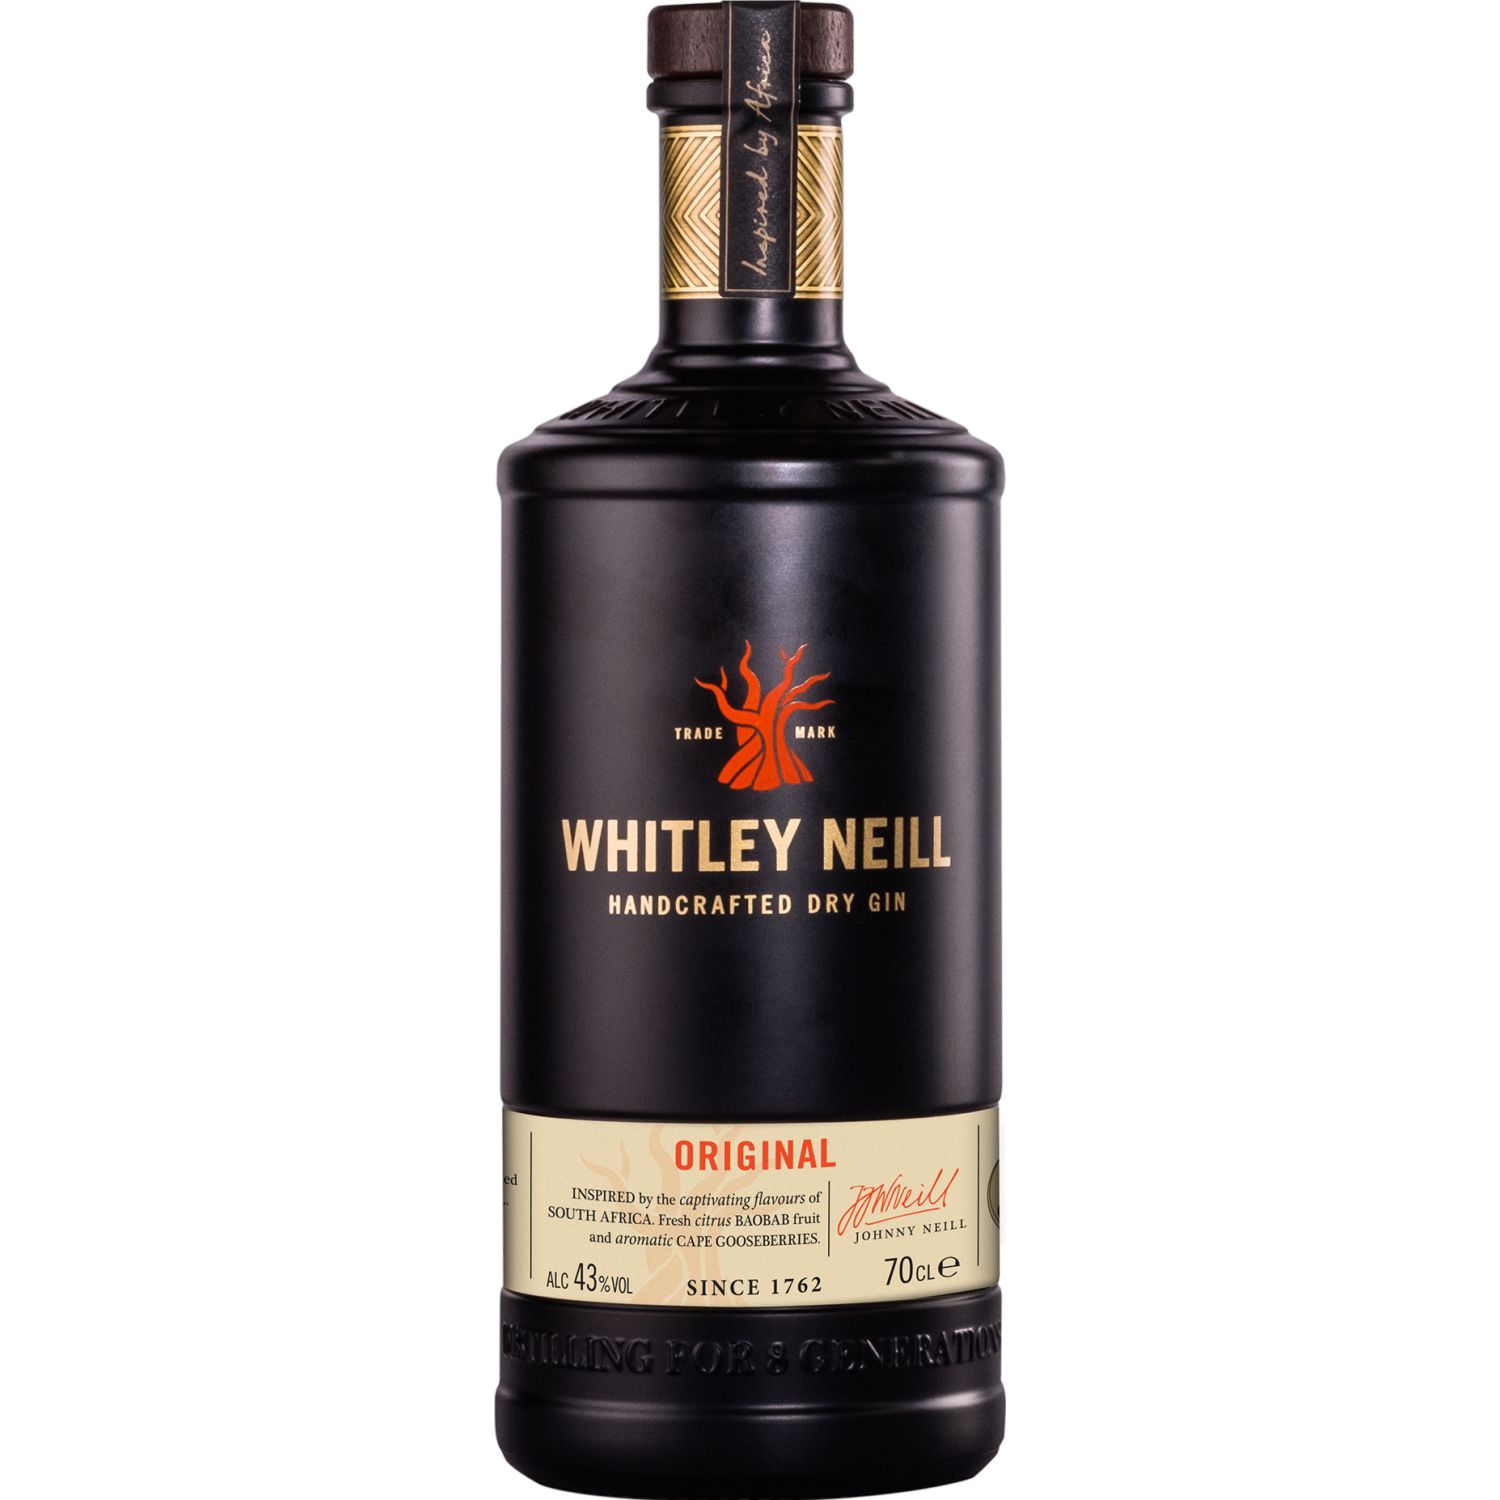 Whitley Neill Whitley Neill Dry Gin 700 ML SIN COLOR Gin